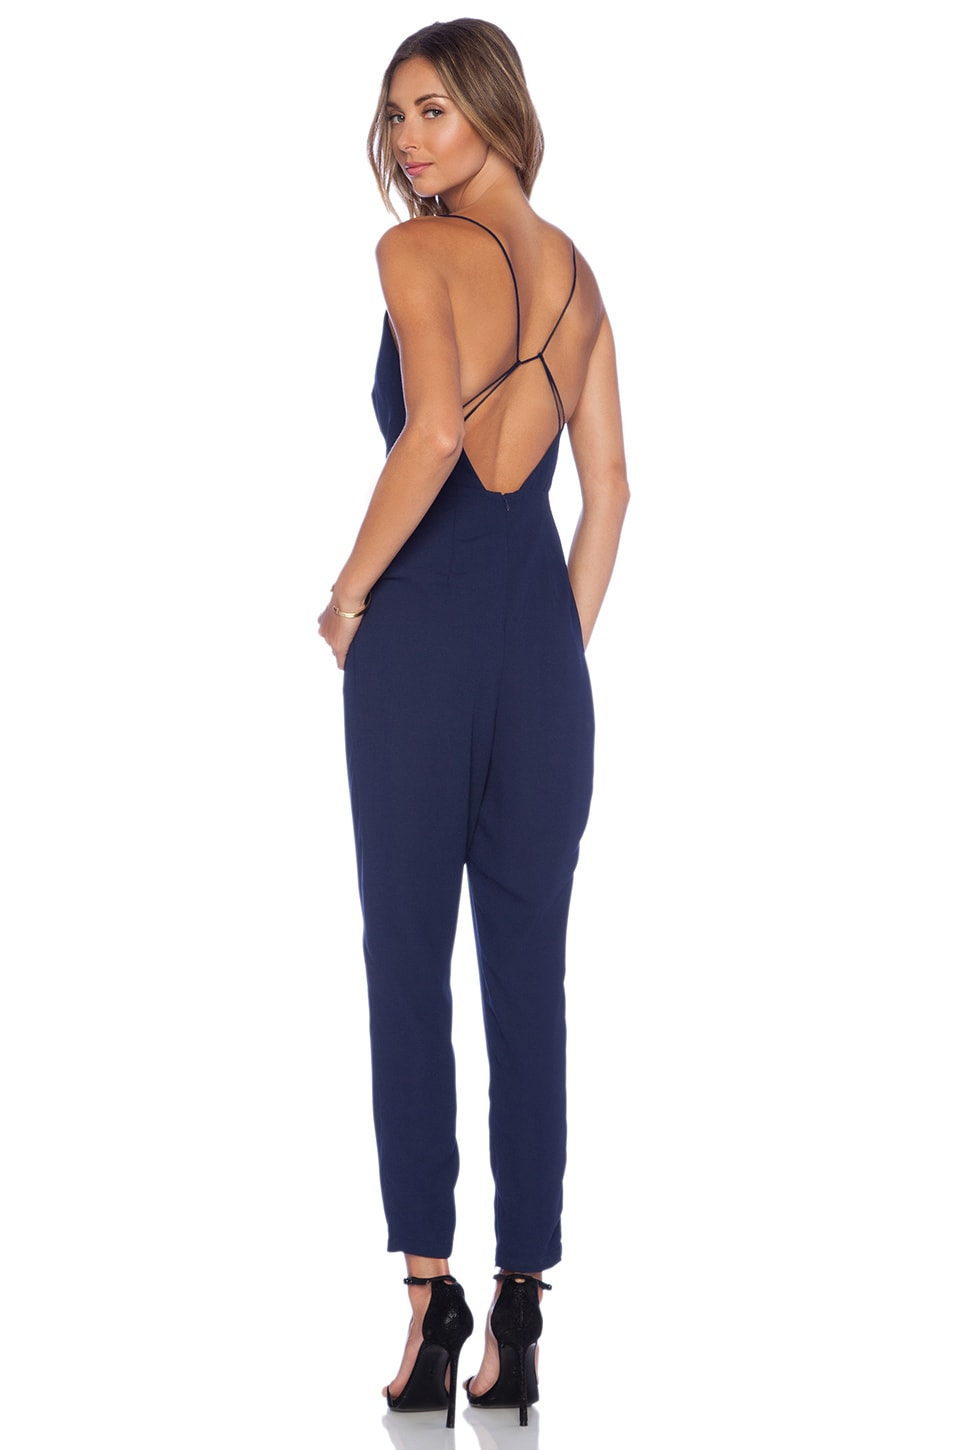 Finders Keepers All Time High Cut Out Back Jumpsuit in